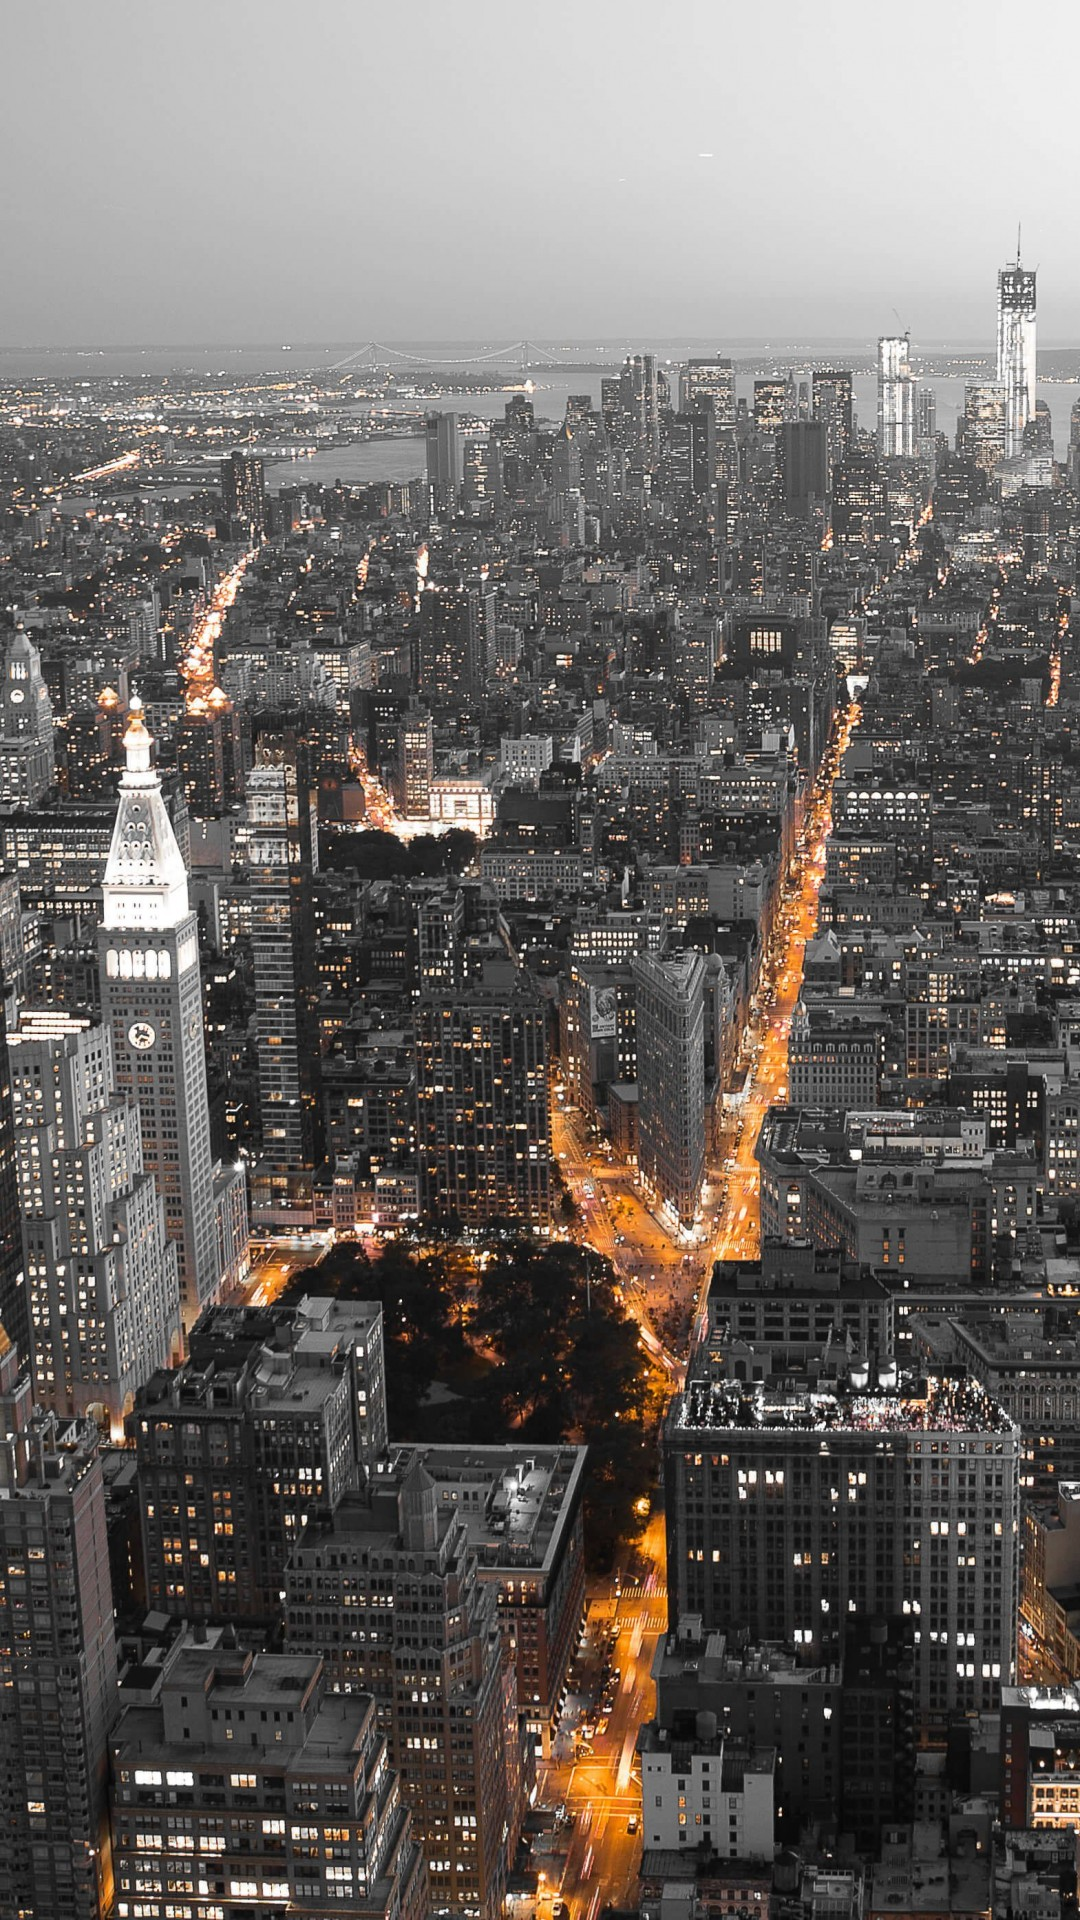 New York City by Night Wallpaper for SAMSUNG Galaxy Note 3